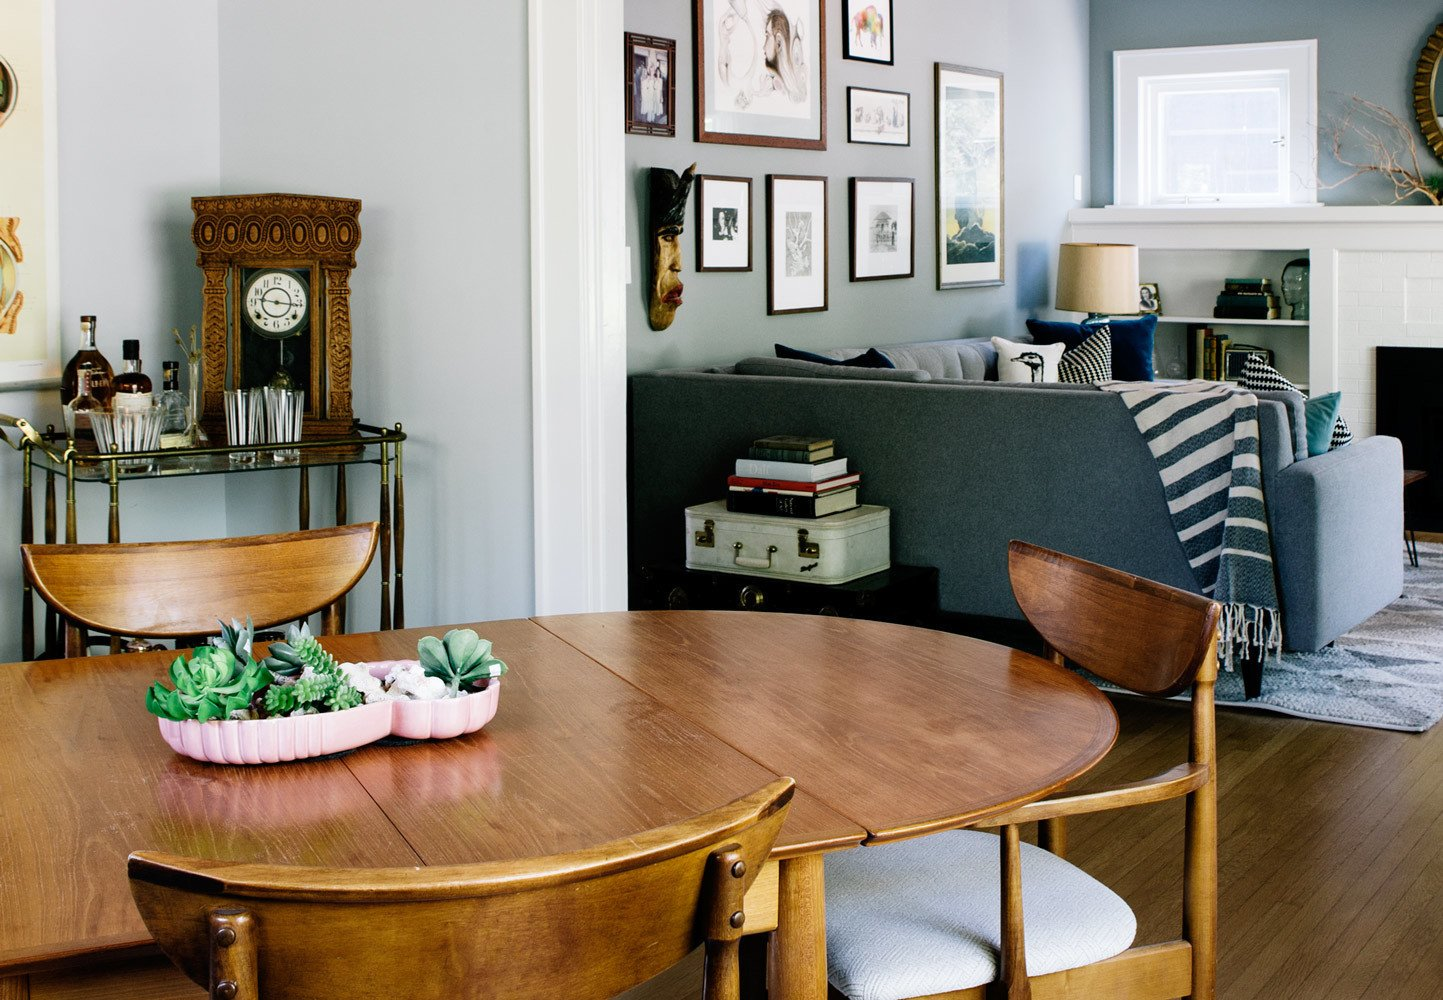 Photo 1 of 10 in A 1925 Portland Home Is a Rad Mashup of 20th-Century Styles